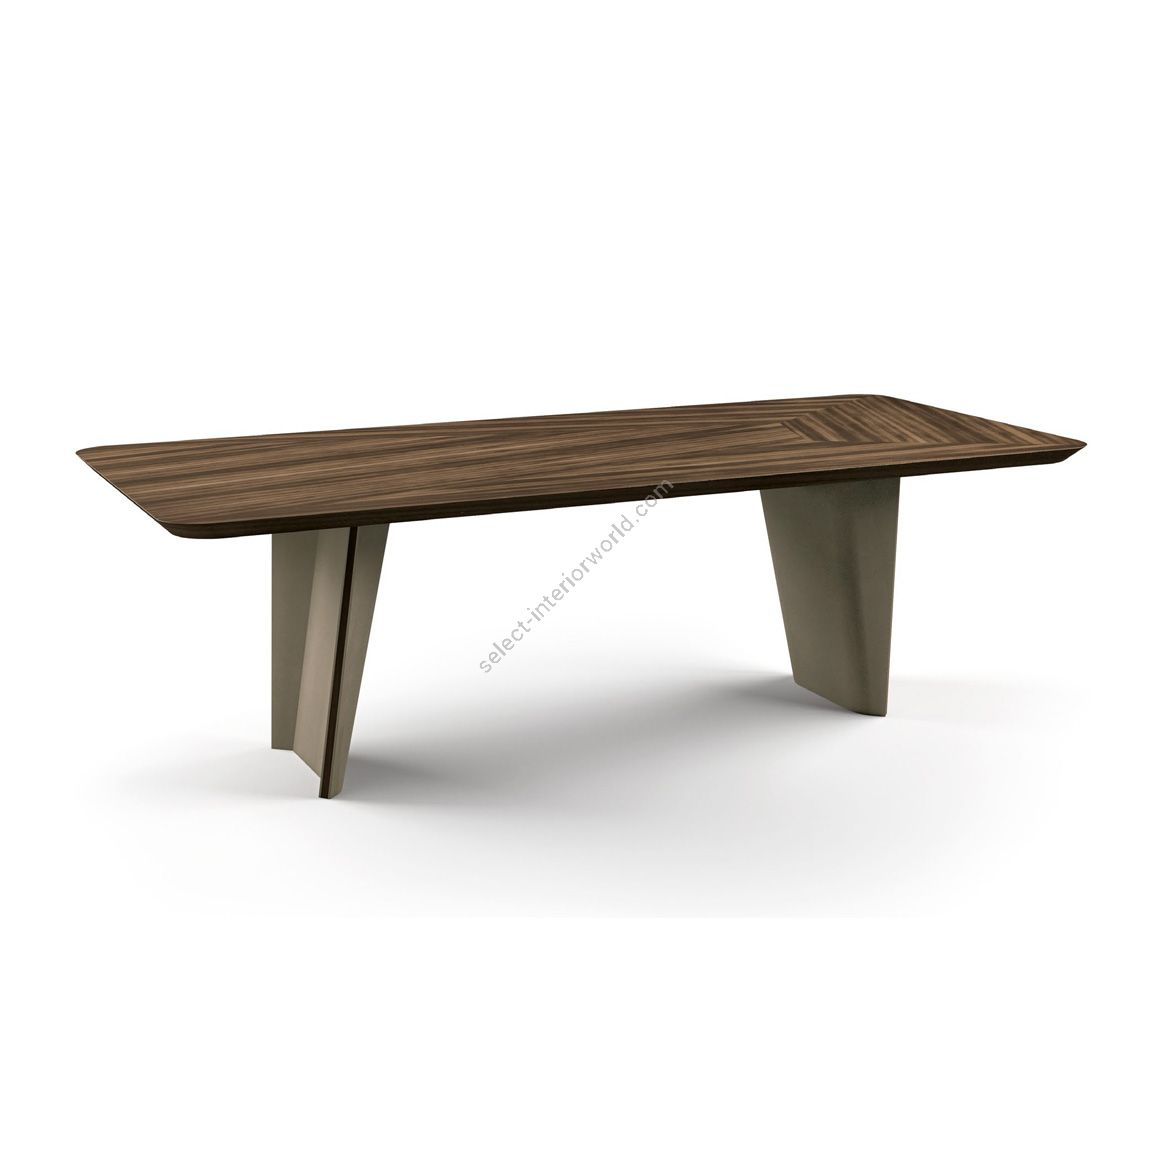 Pregno / Dining table / Blade